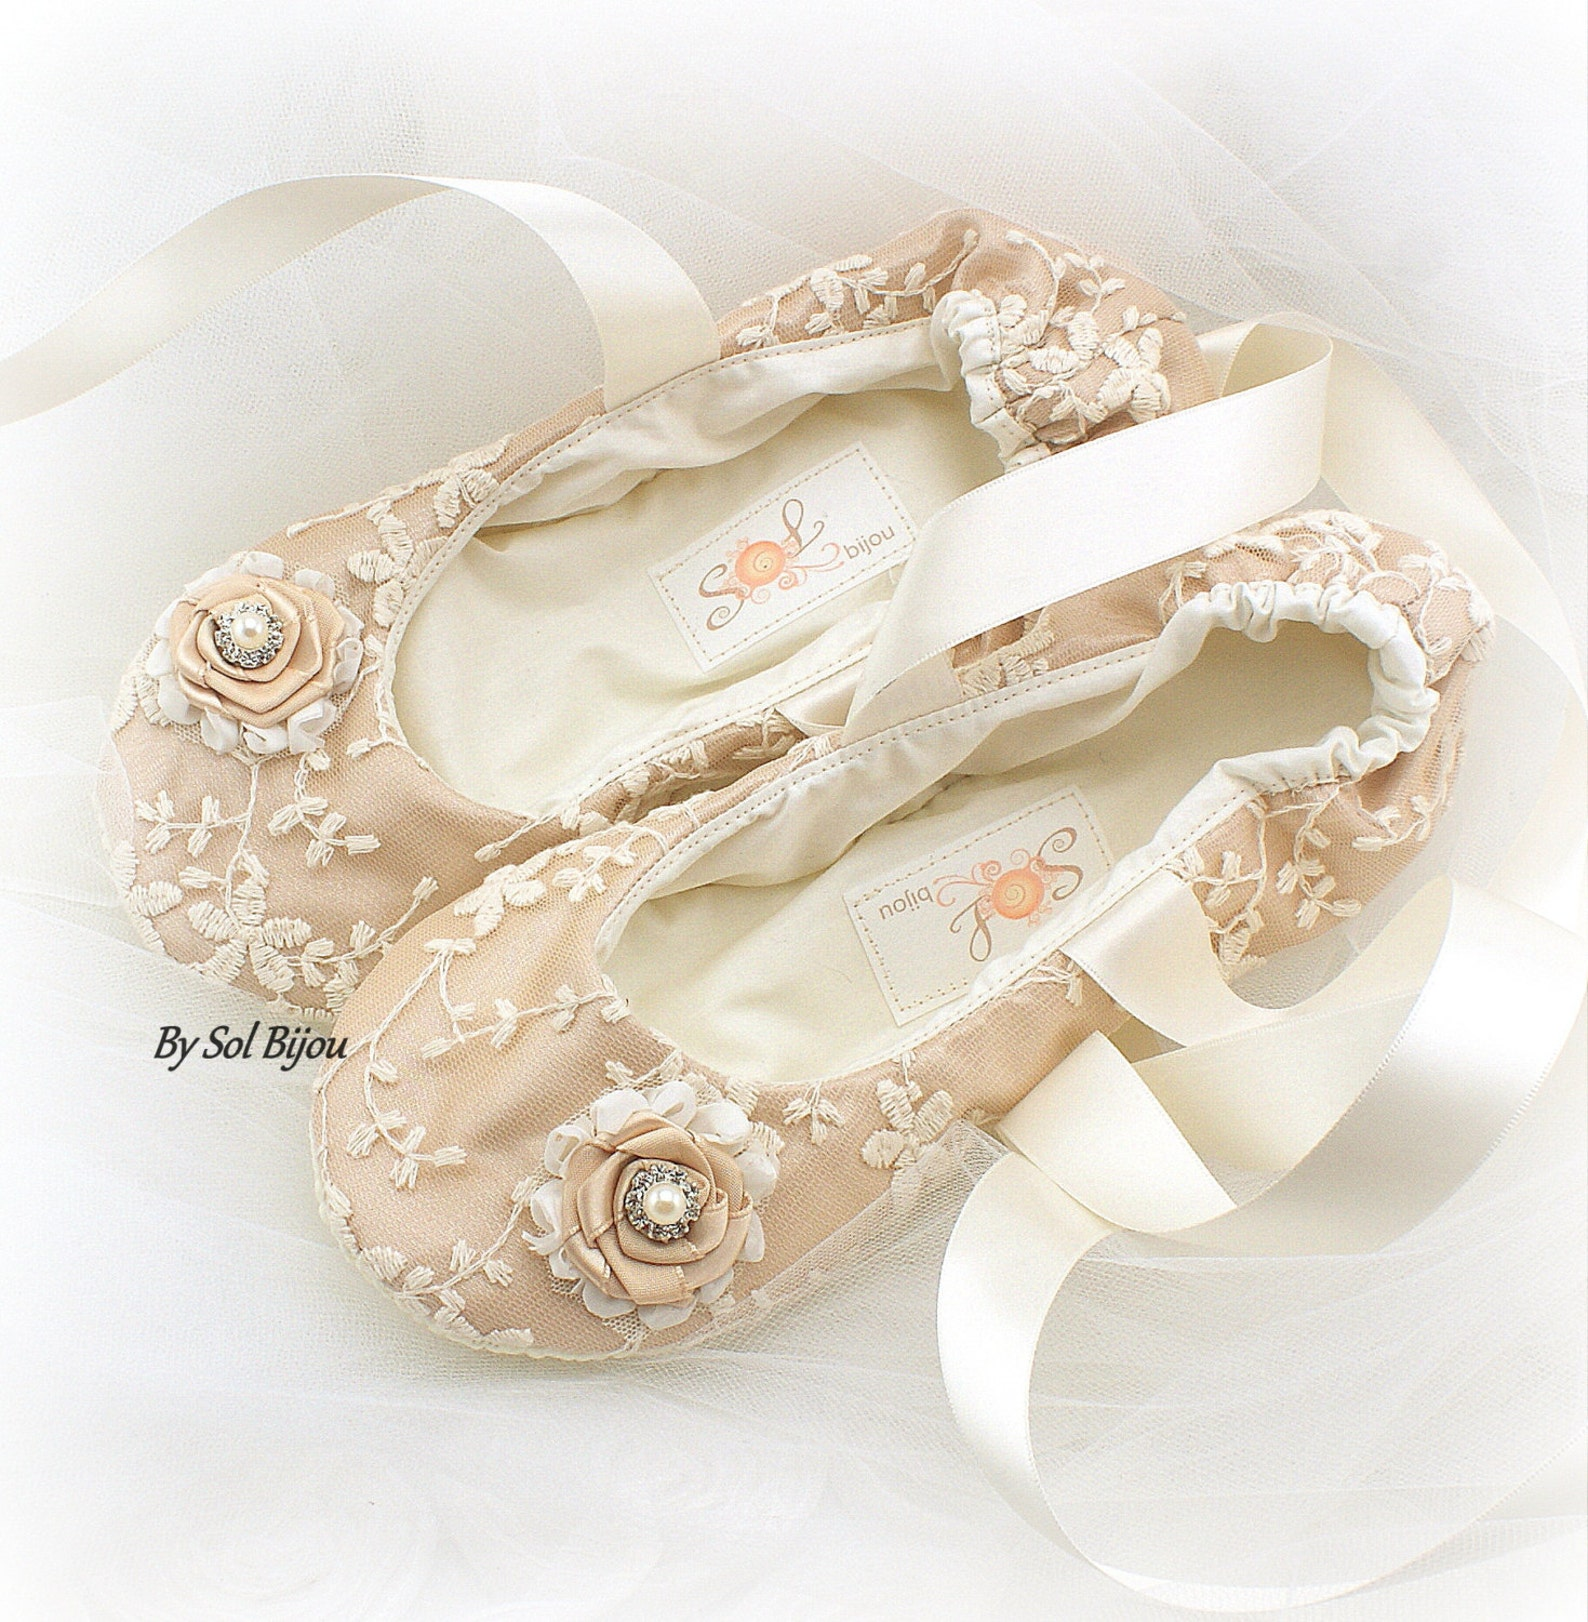 custom wedding ballet slippers in champagne and ivory flat shoes for brides